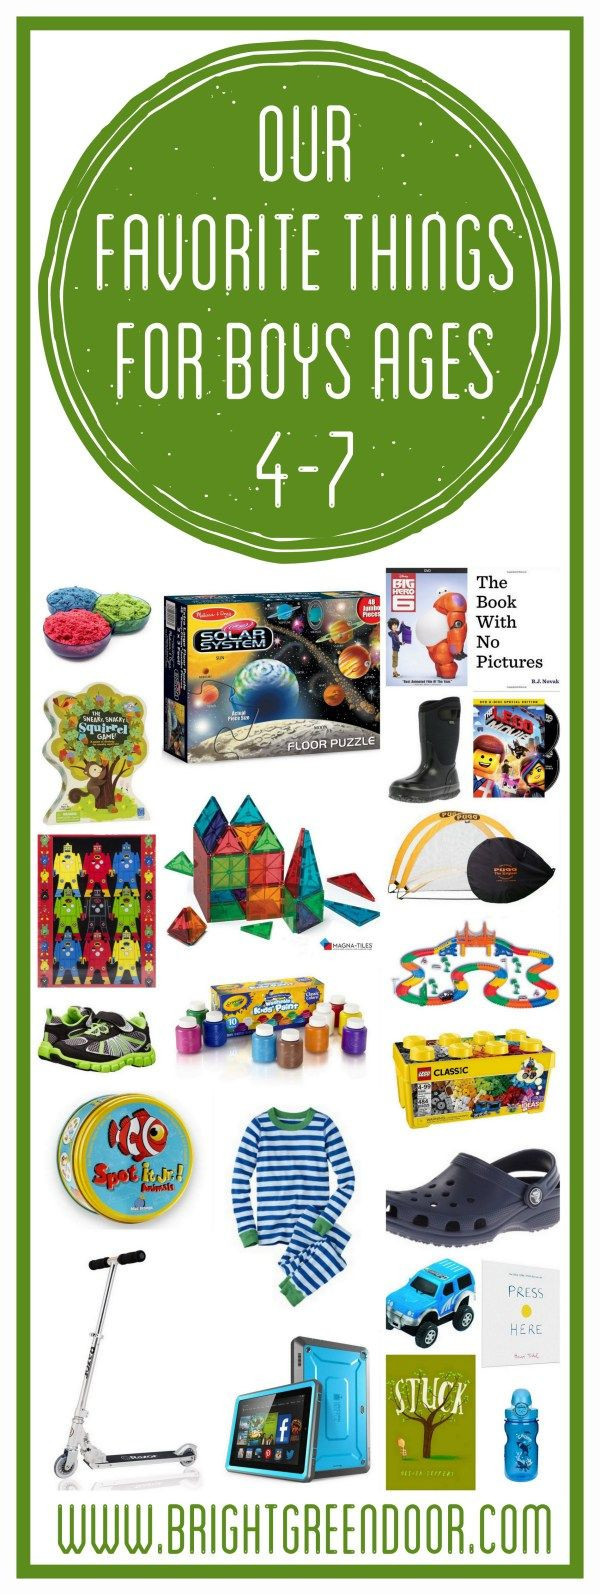 Gift Ideas For Boys Age 7  Our Favorite Things for Boys Ages 4 7